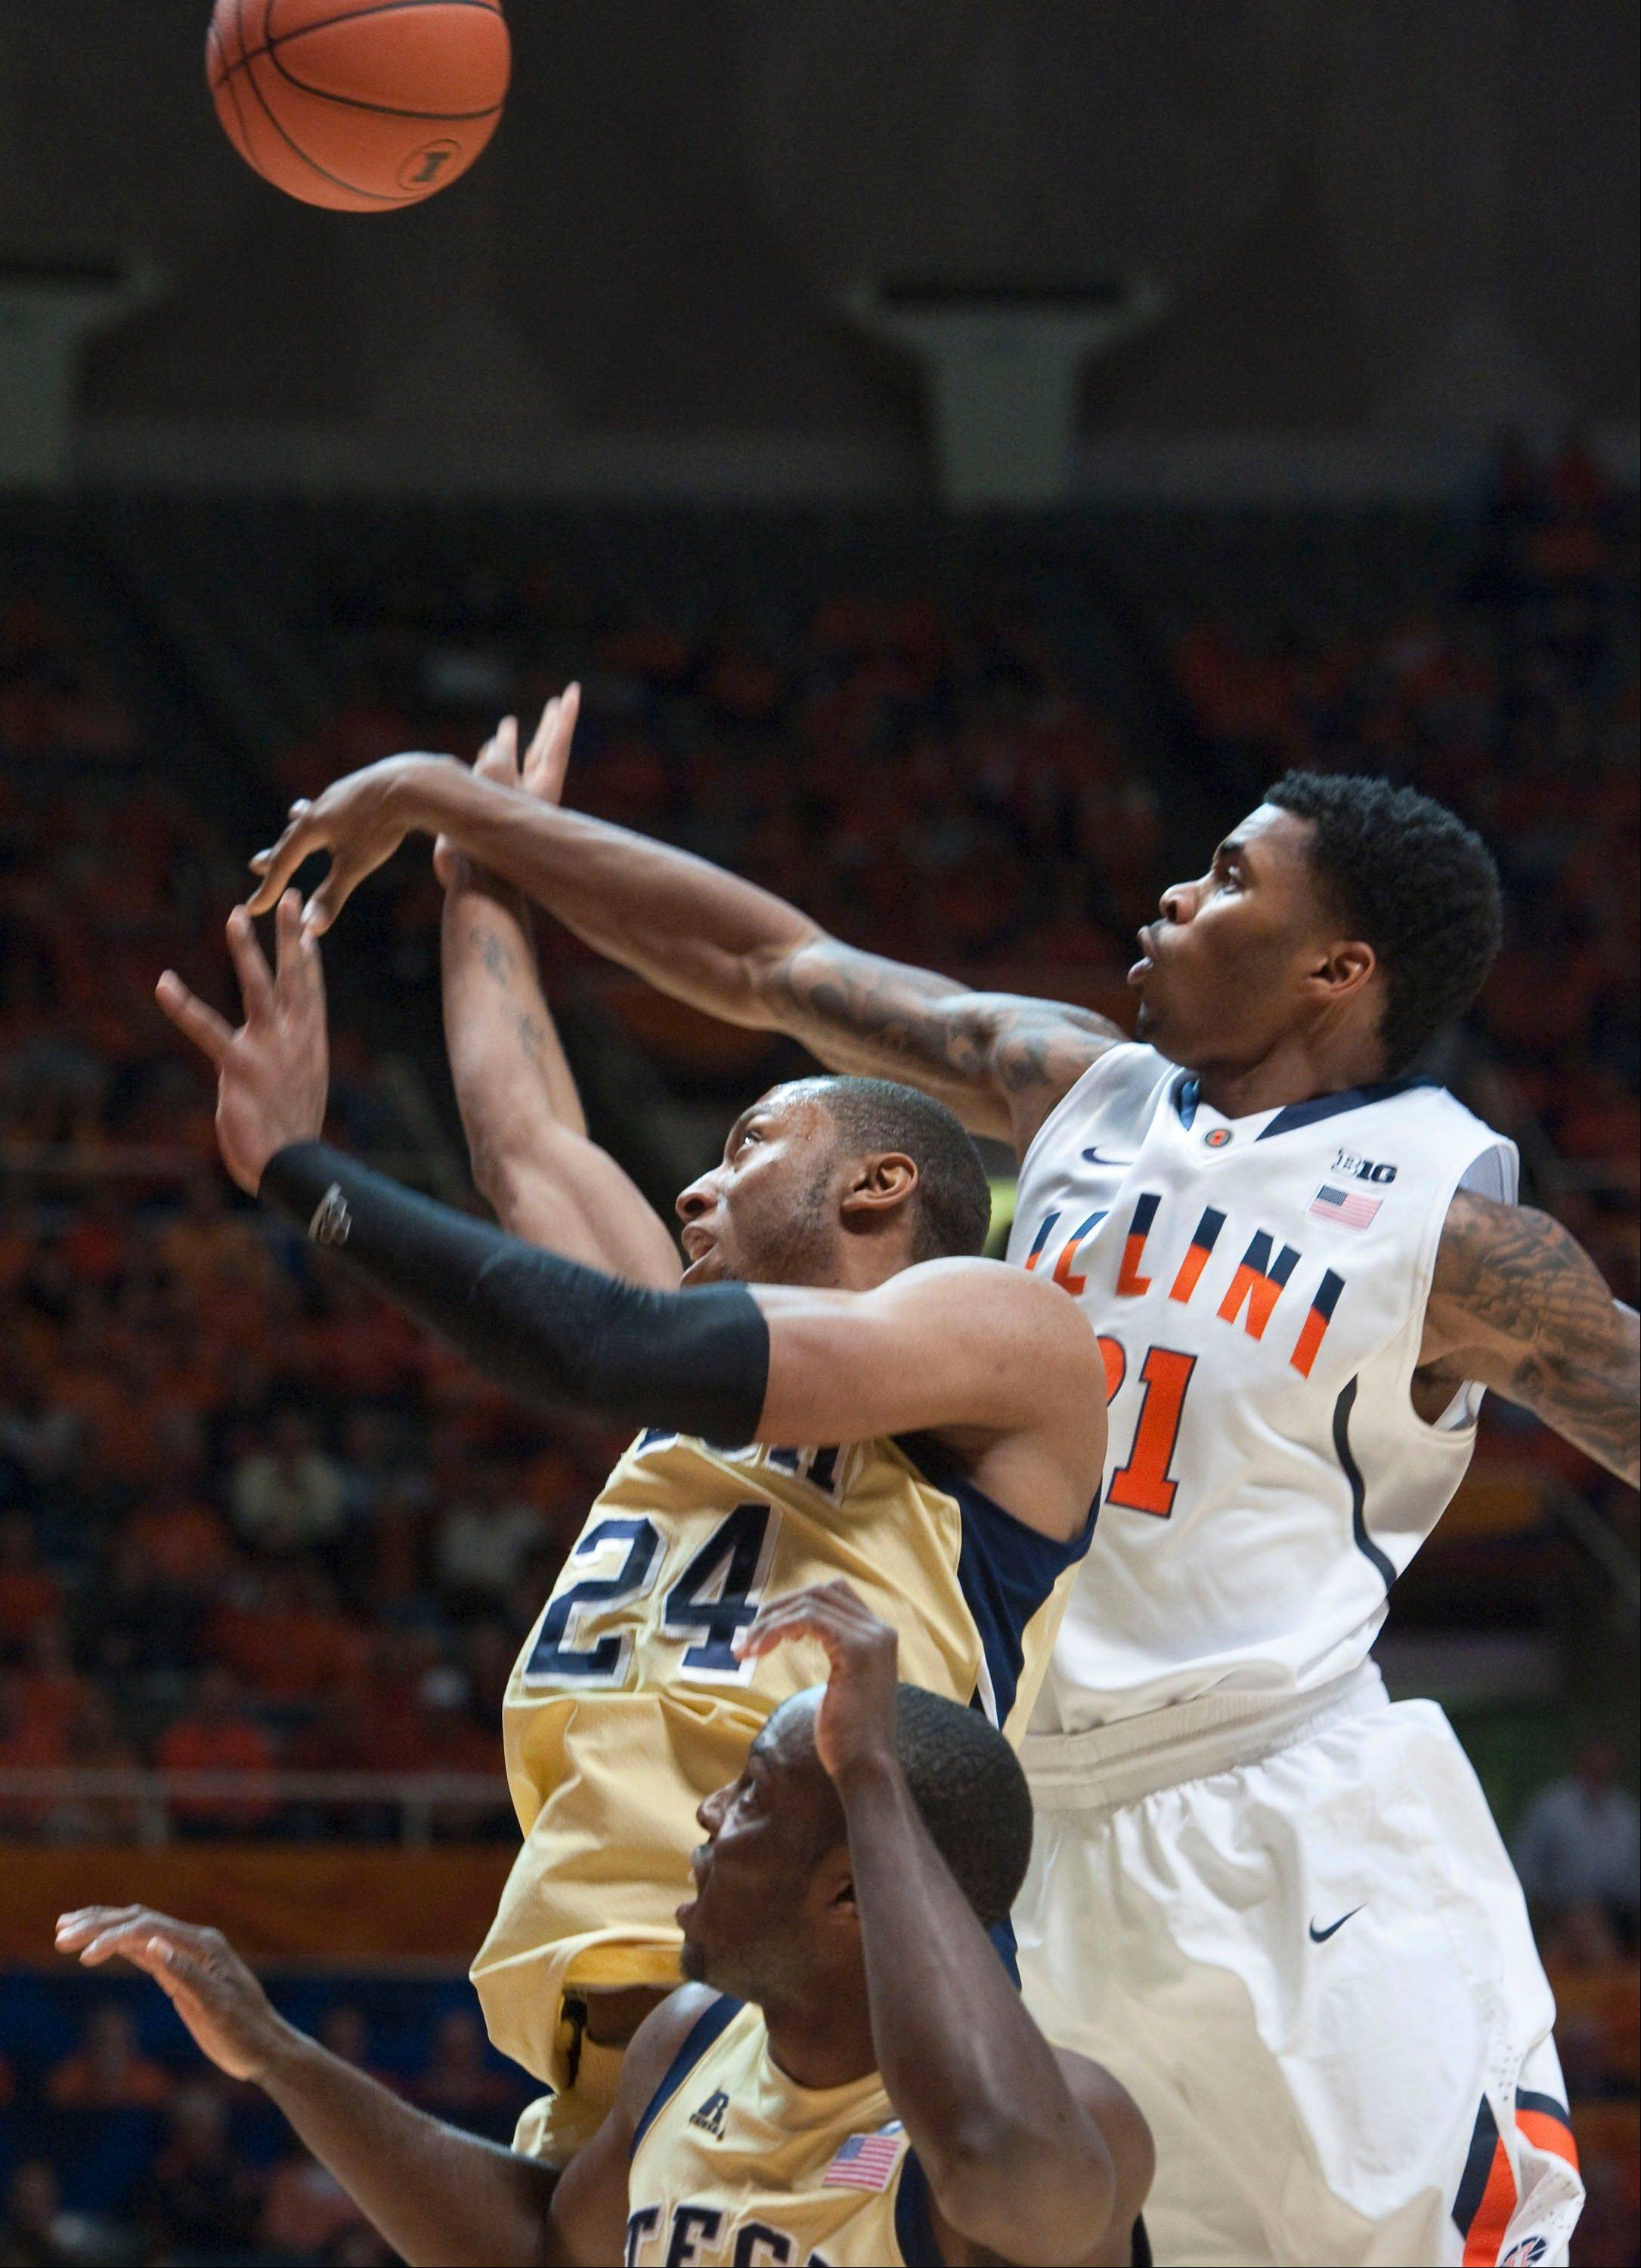 Illinois' Devin Langford swats the ball from Georgia Tech Kammeon Holsey Wednesday during the first half in Champaign.